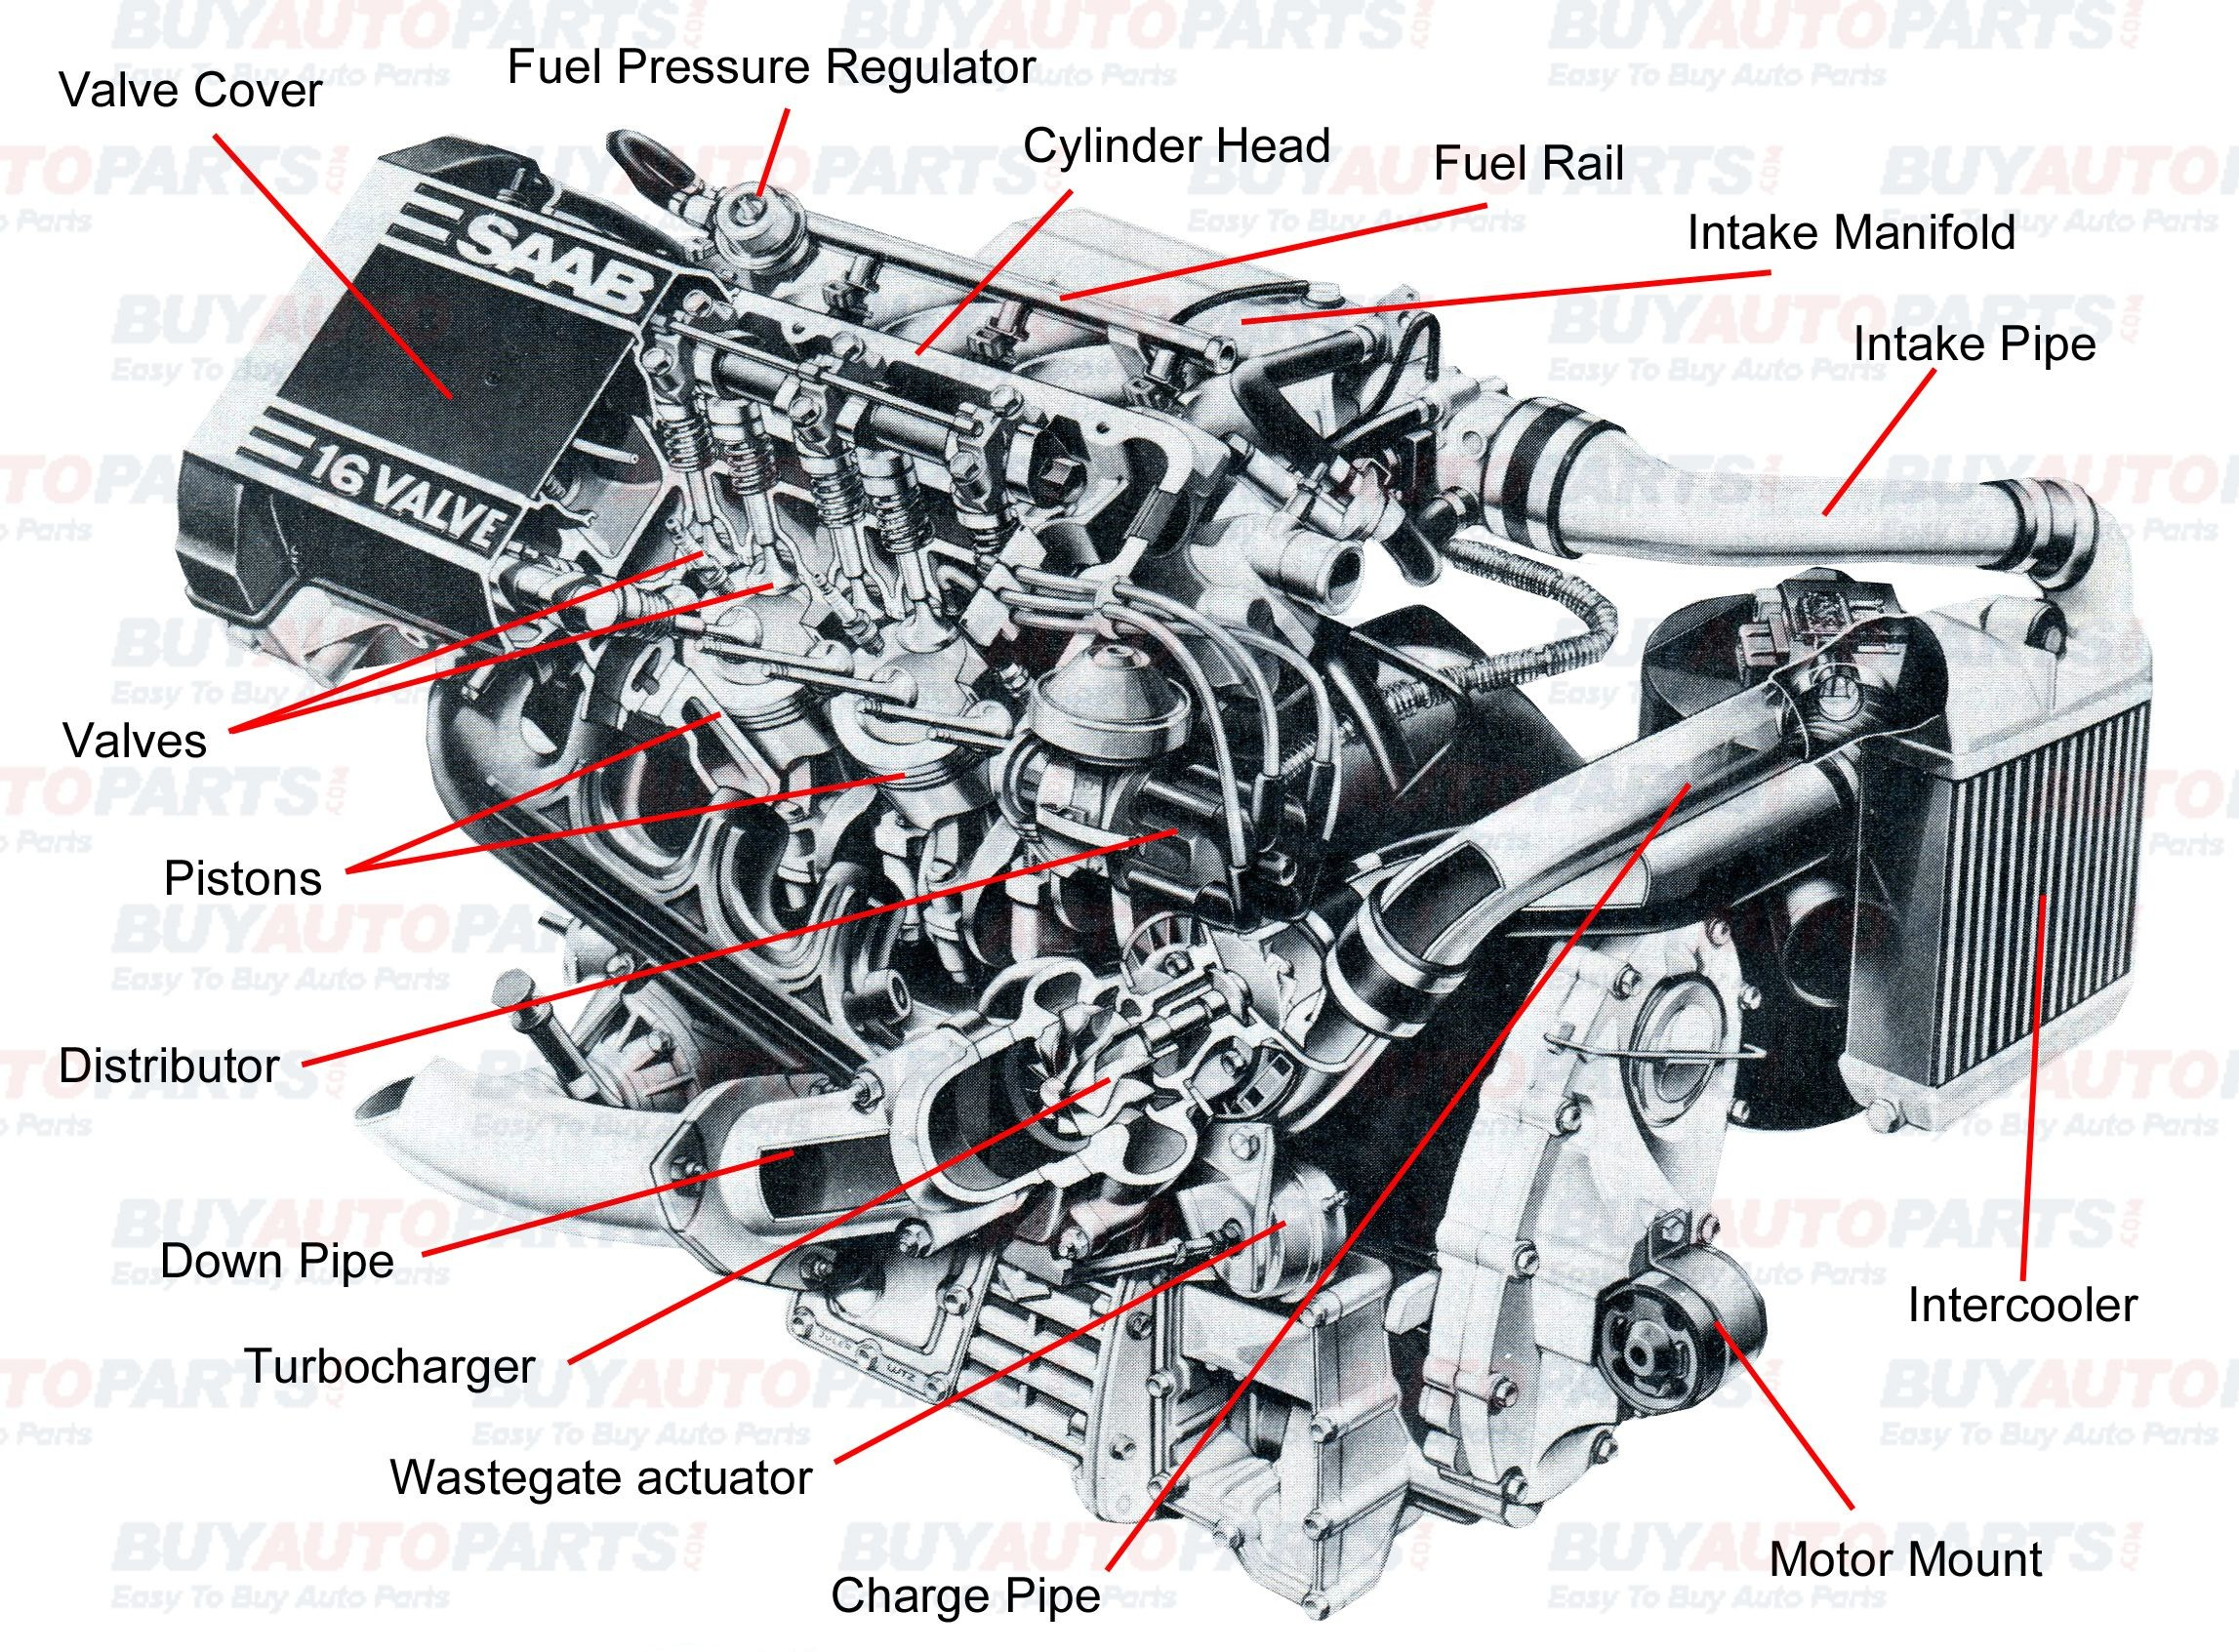 Car Engine Diagram and Explanation All Internal Bustion Engines Have the Same Basic Ponents the Of Car Engine Diagram and Explanation